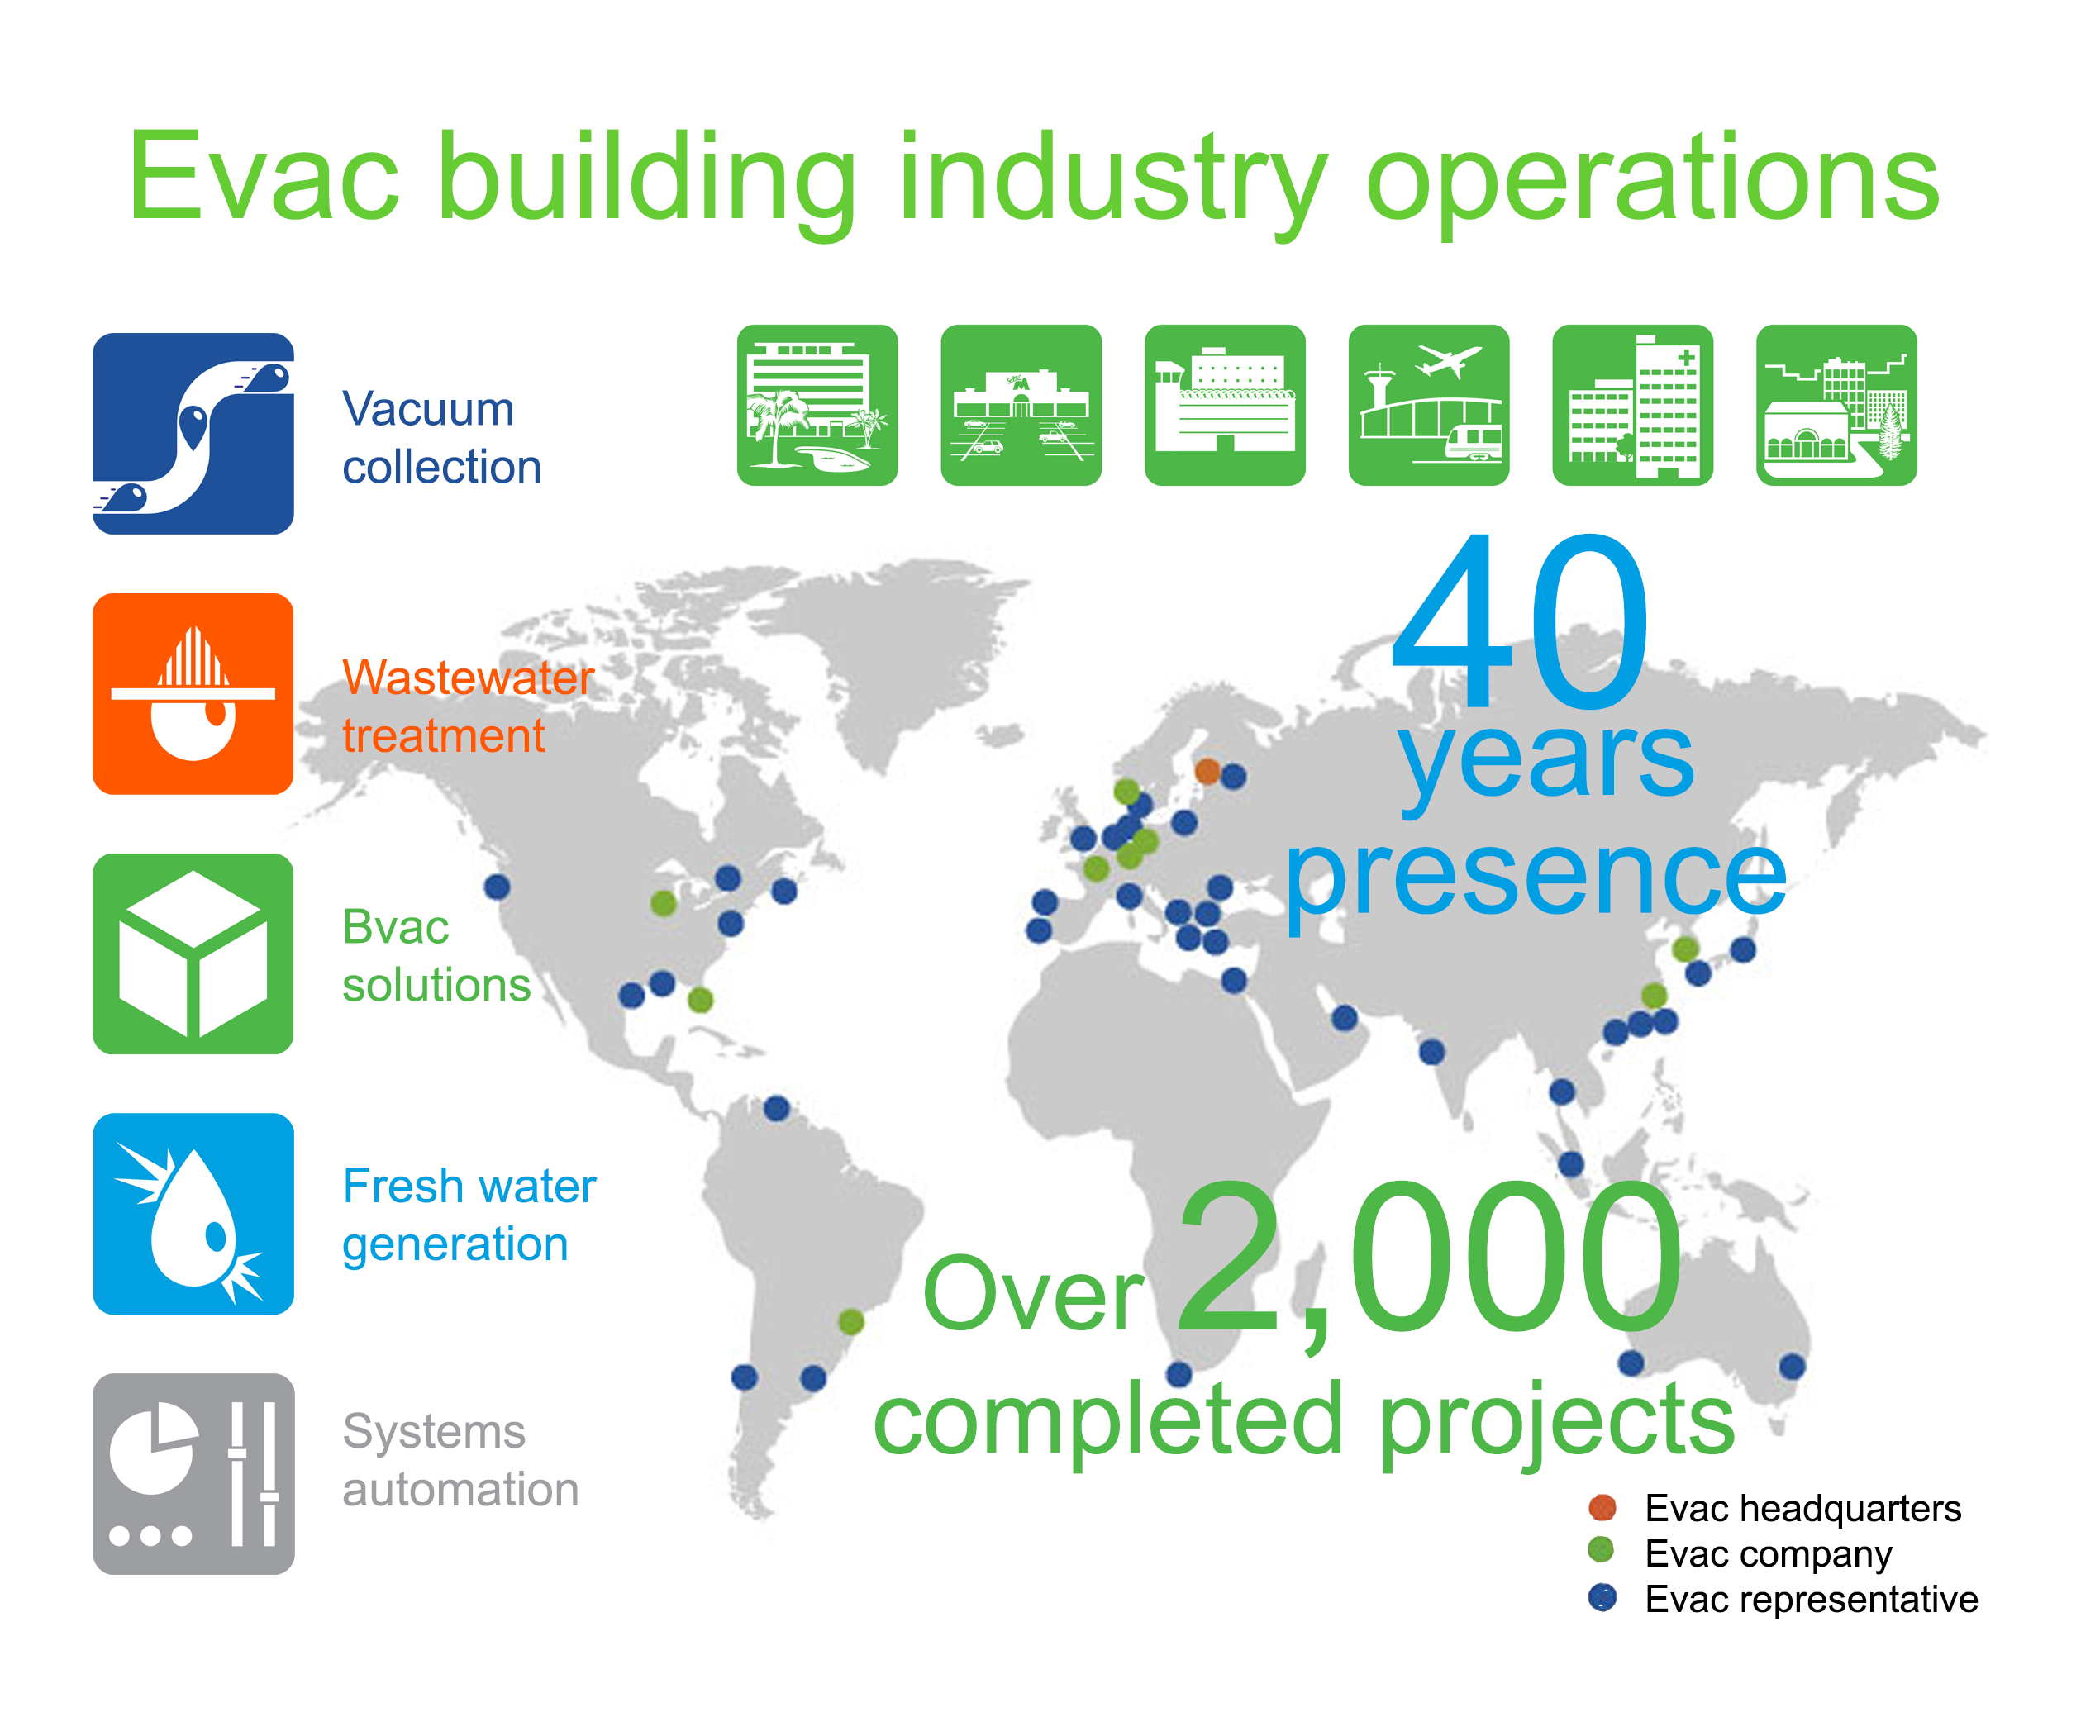 Building industry operations